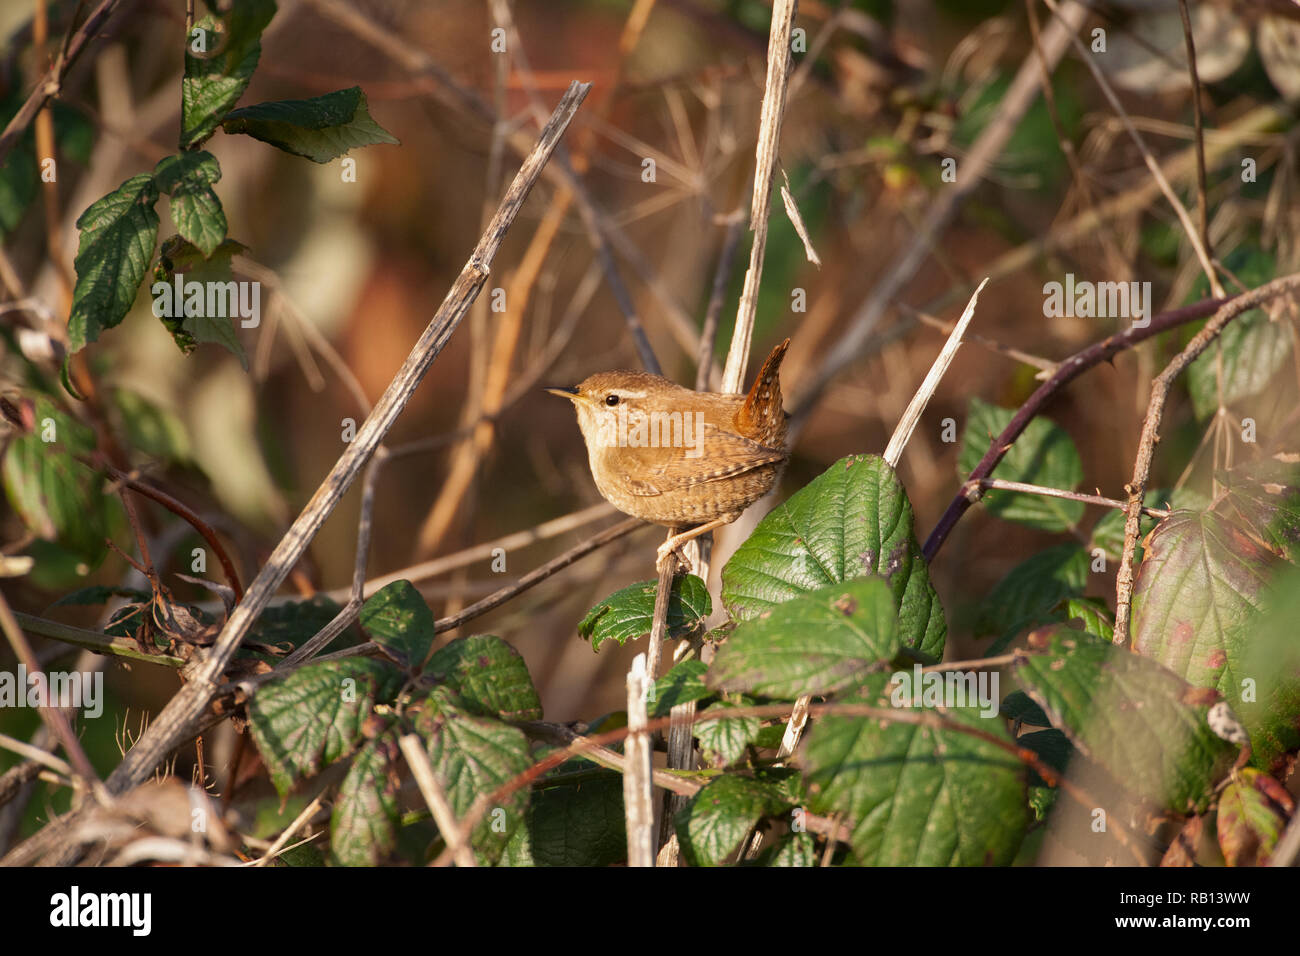 European Wren,Troglodytes troglodytes, Hampstead Heath, London, United Kingdom Stock Photo